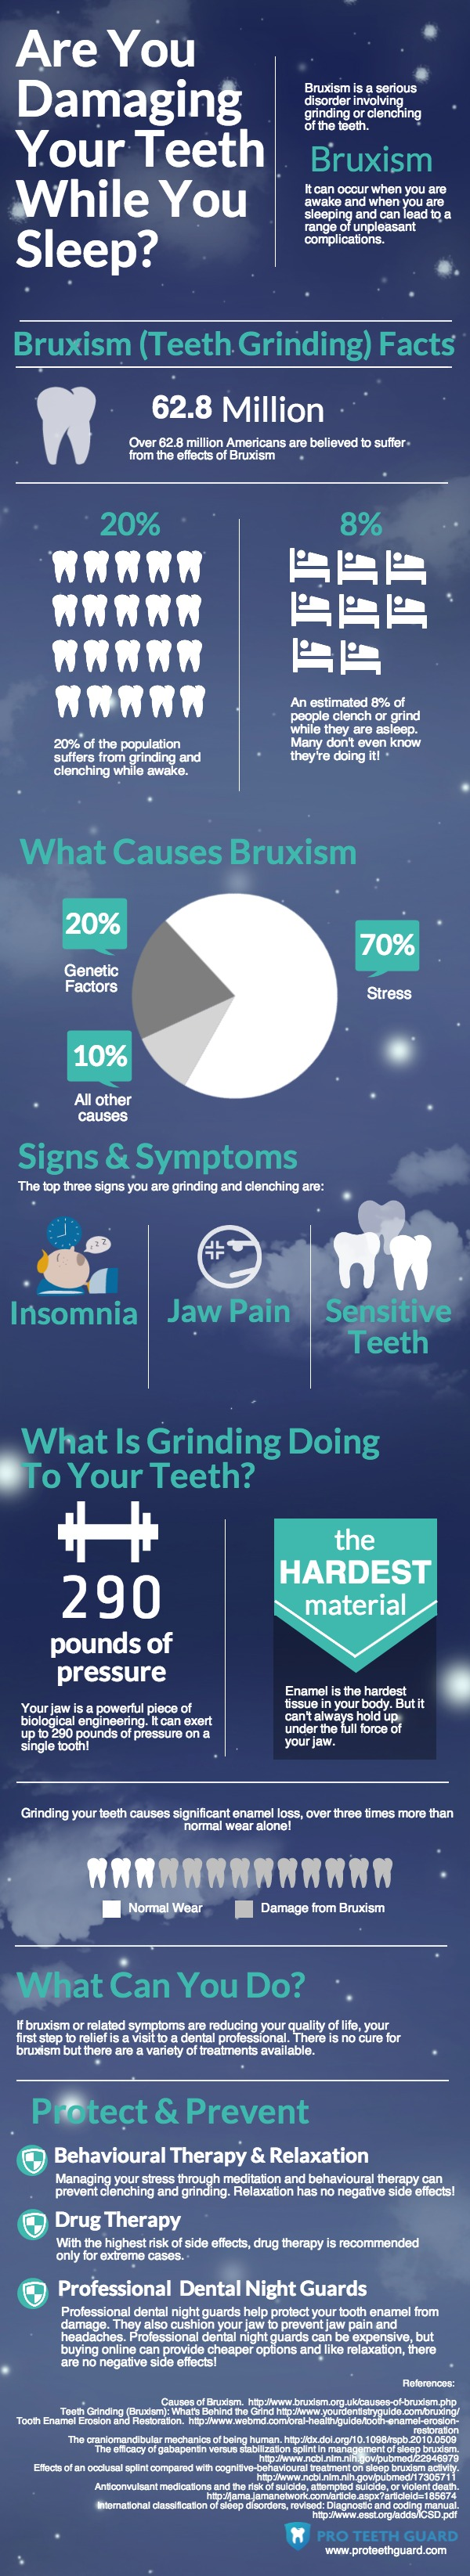 Infographic on Bruxism - Are you damaging your teeth while you sleep?